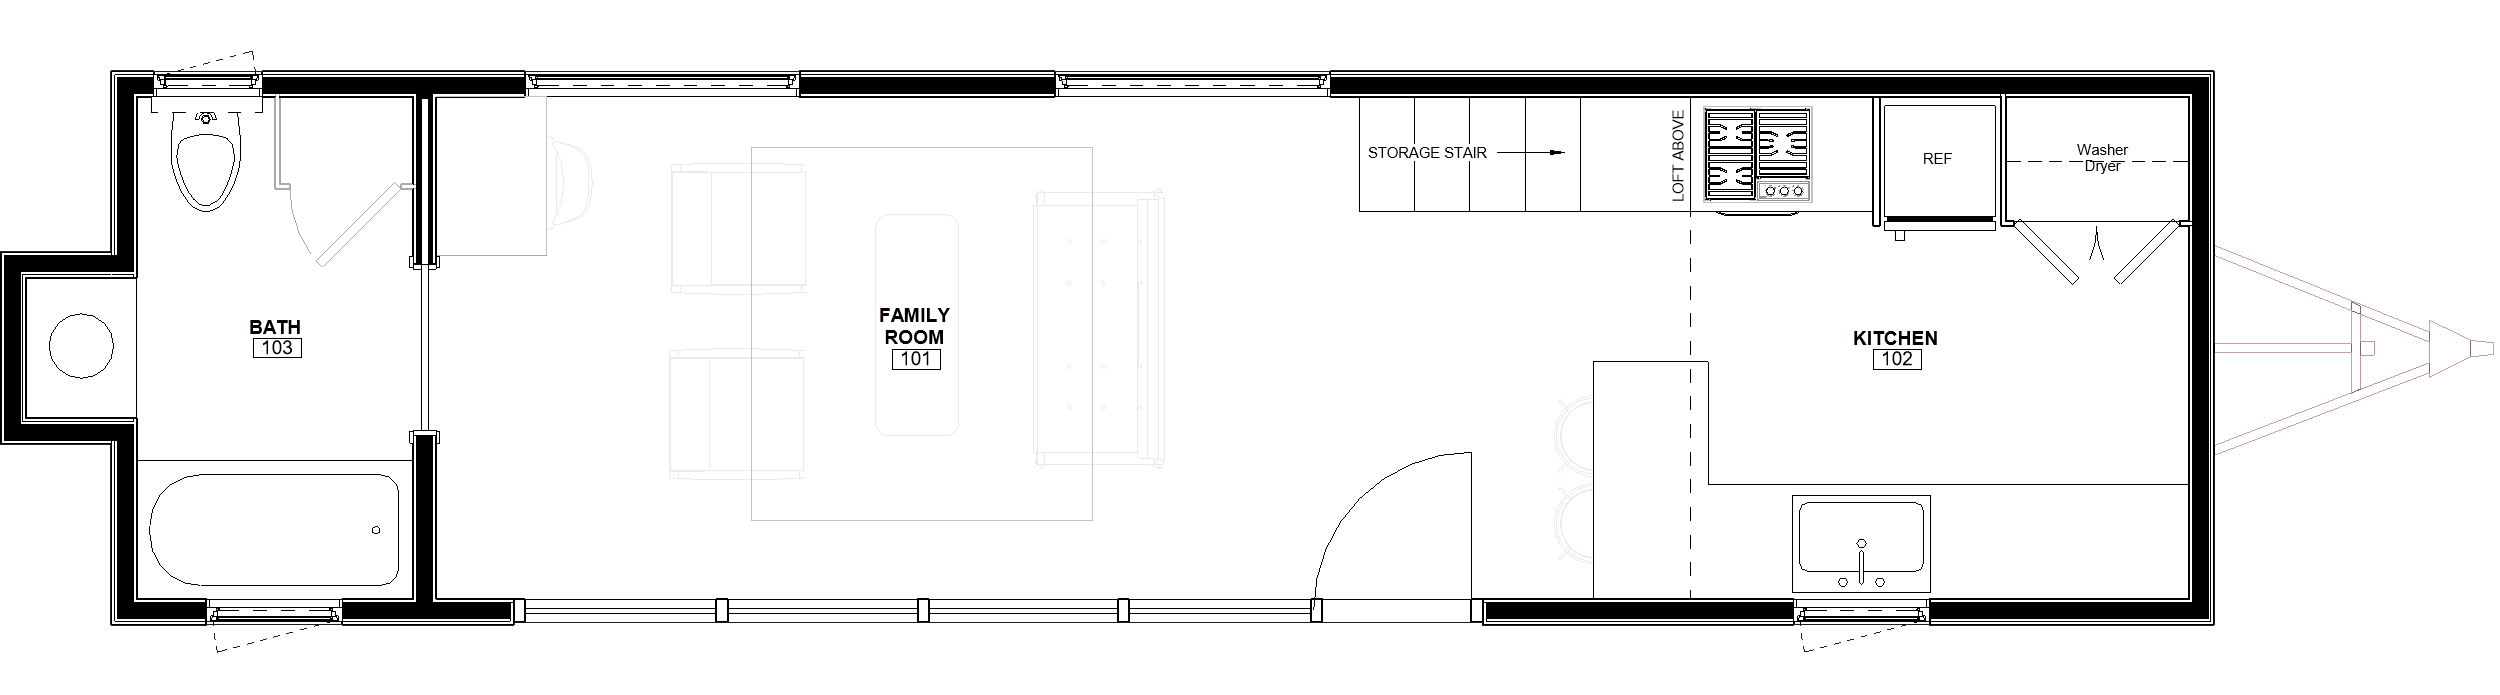 38ft Loft Brooks floor plan